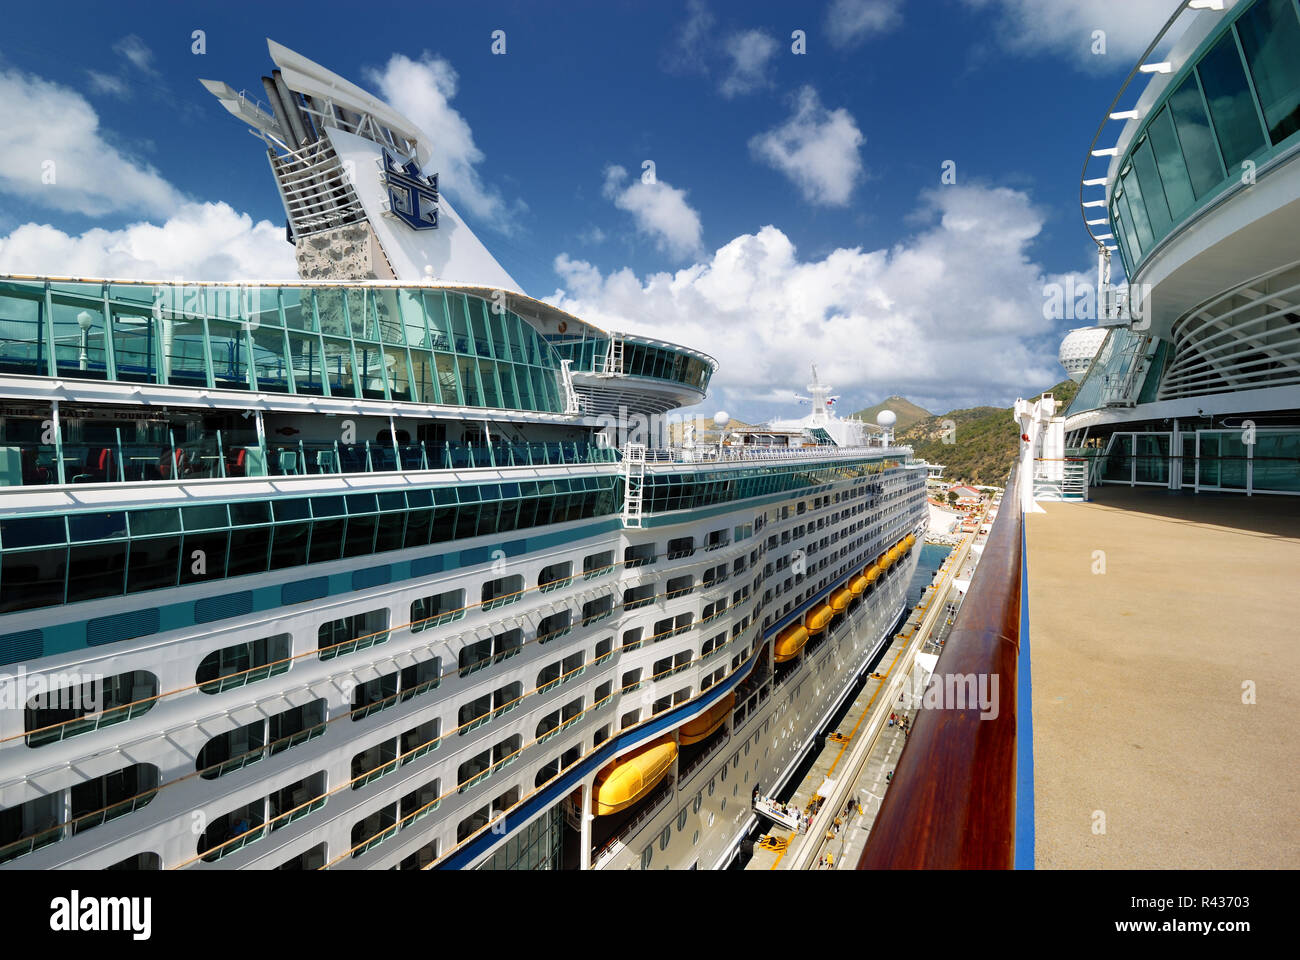 A view of Royal Carirbbean's Explorer of the Seas as viewed from the upper deck of the Adventure of the Seas, docked at St. Maarten. - Stock Image